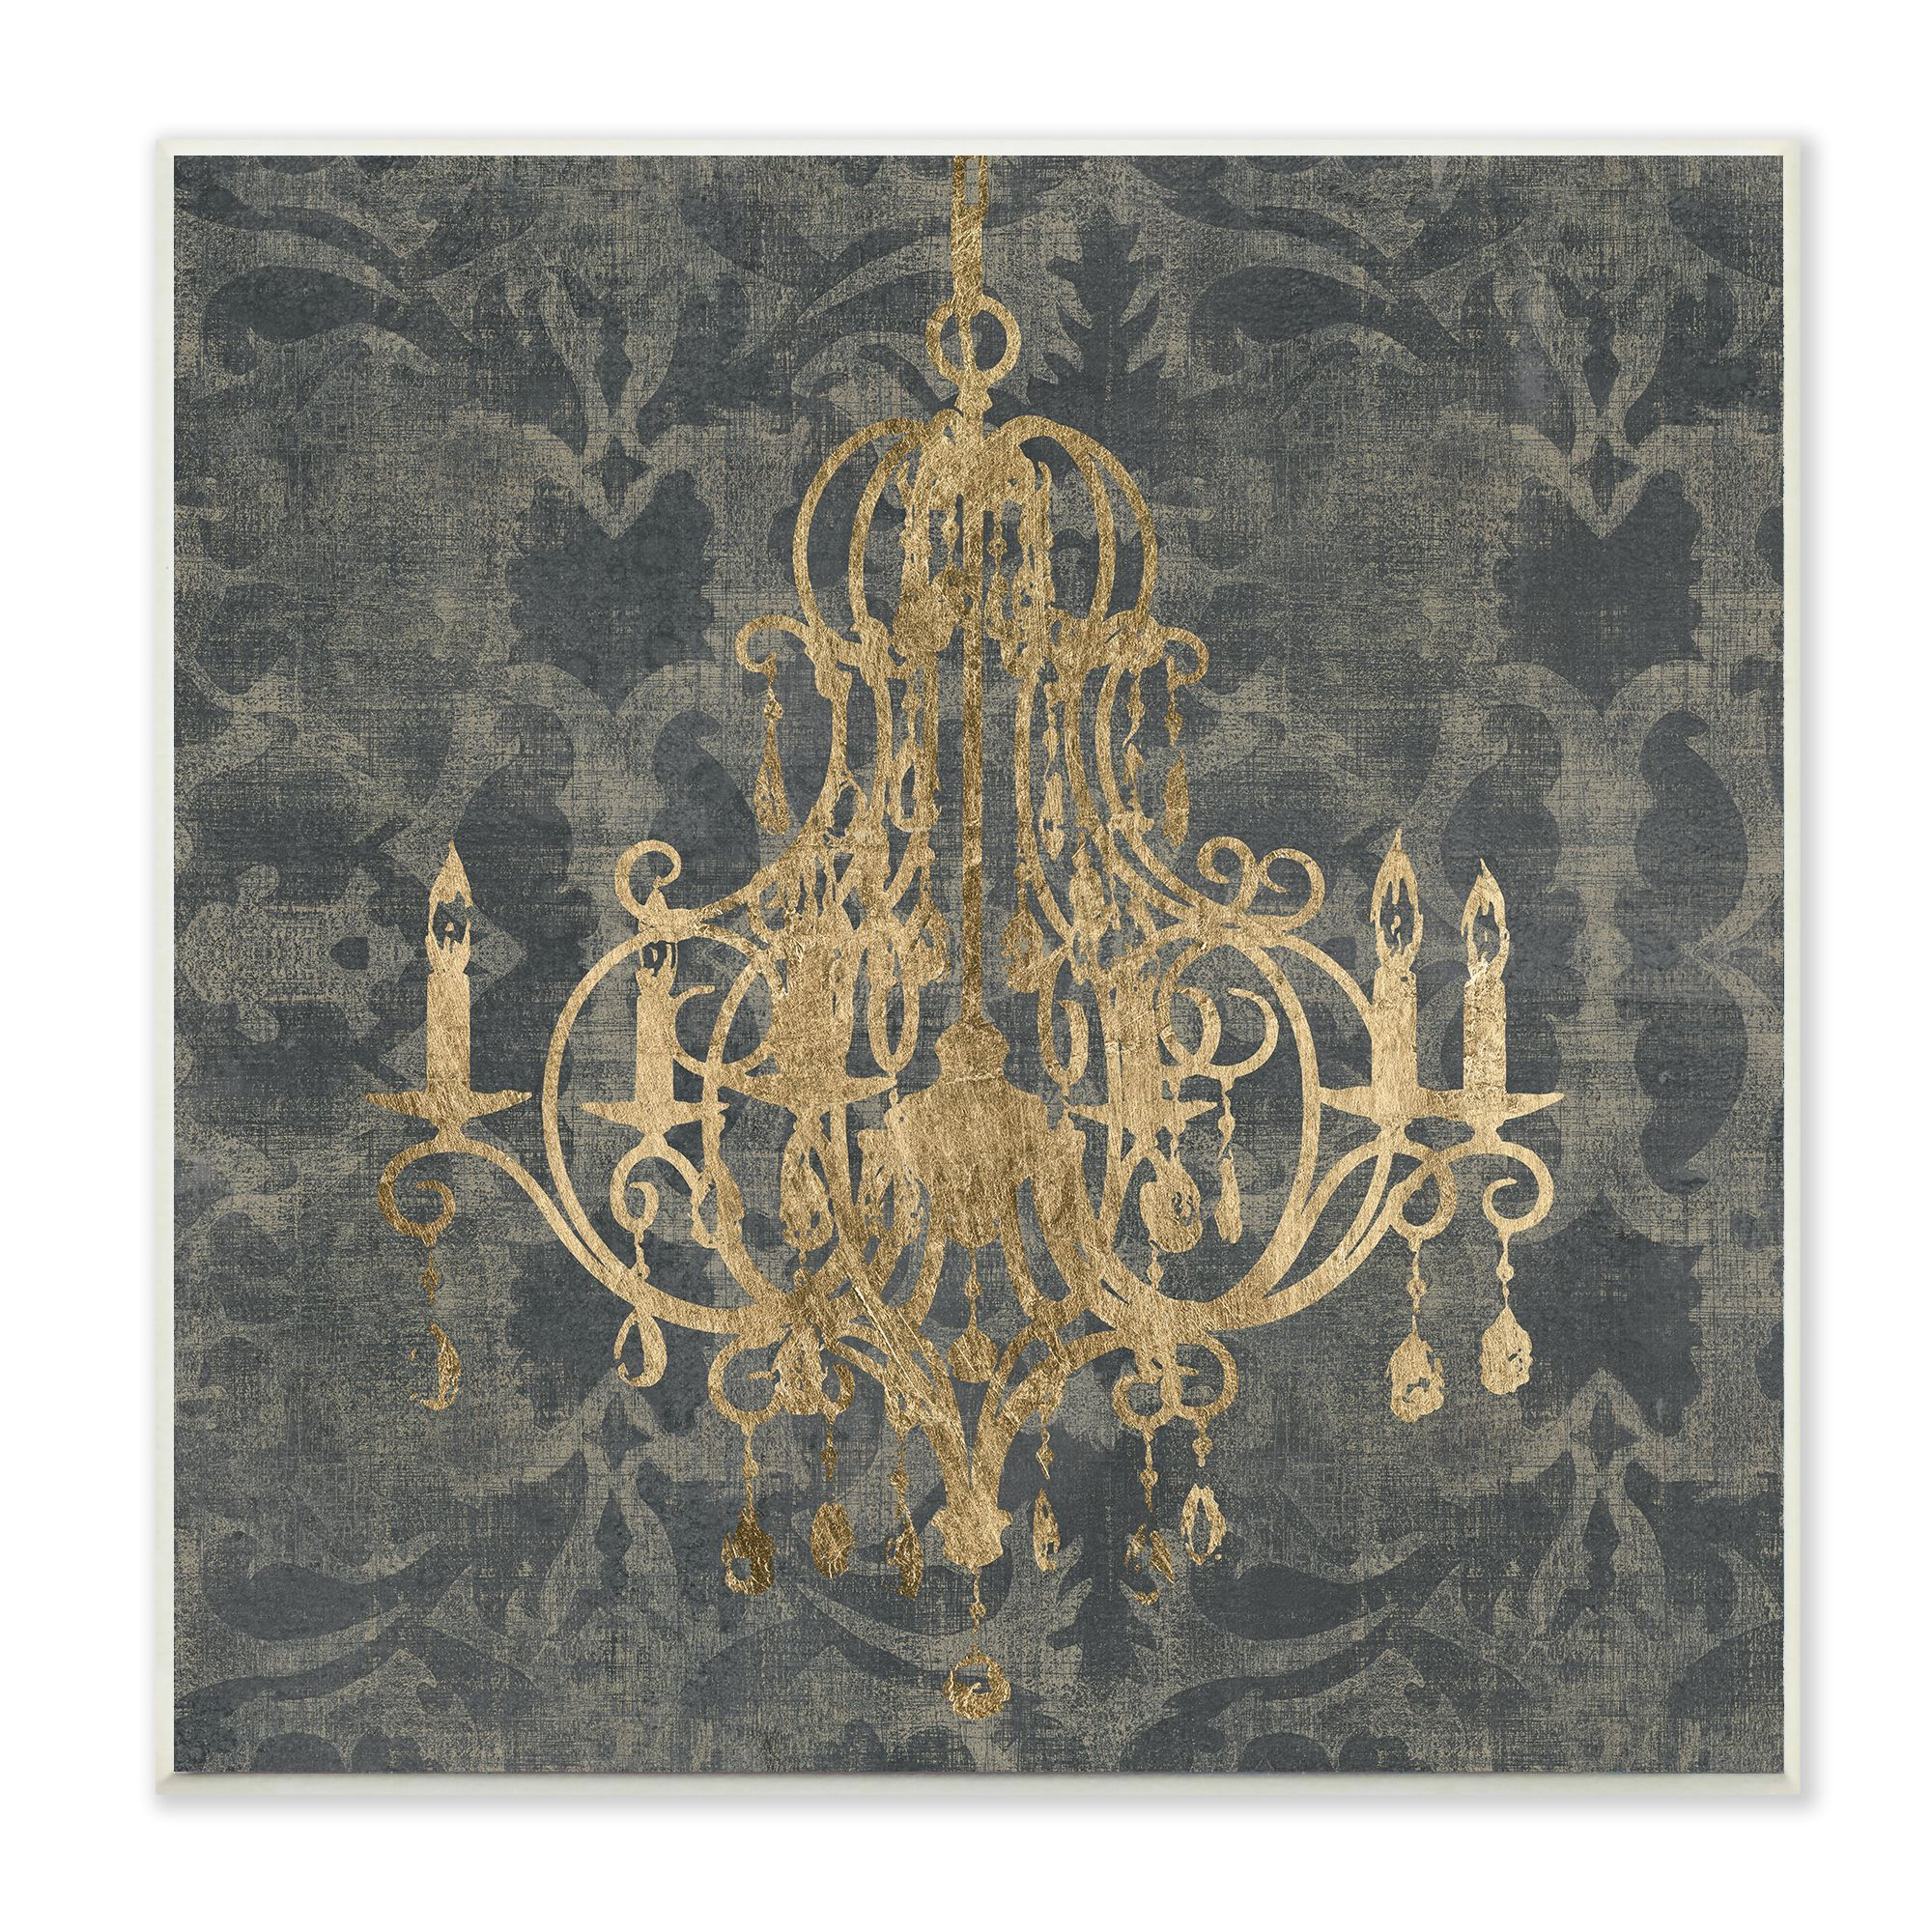 Stupell wooden damask chandelierthemed stretched canvas wall art